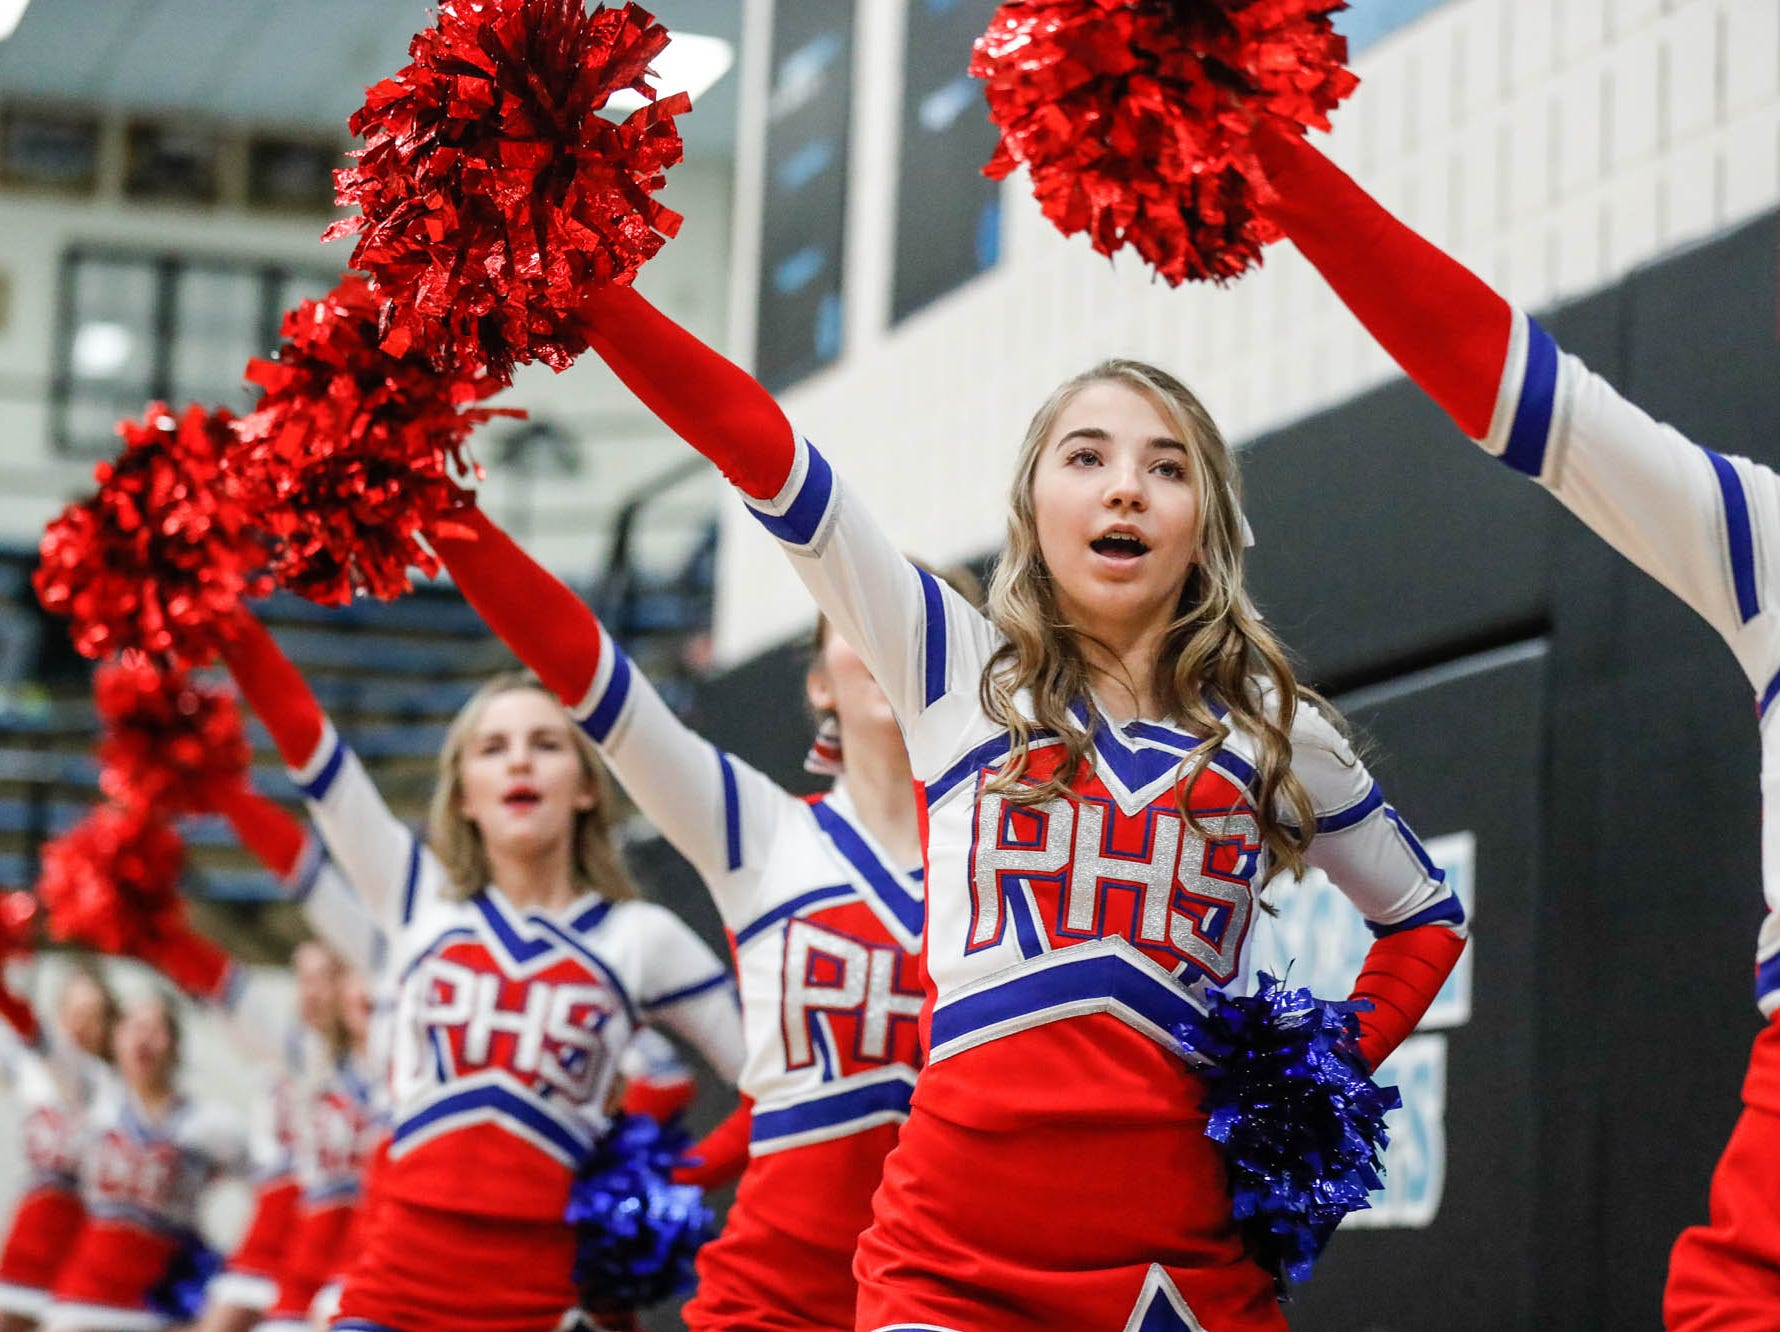 Plainfield High School Cheerleaders cheer on their team during a 2019 Hendricks County Basketball Tournament game between Plainfield High School and Cascade High School, held at Cascade on Wednesday, Jan. 2, 2019.